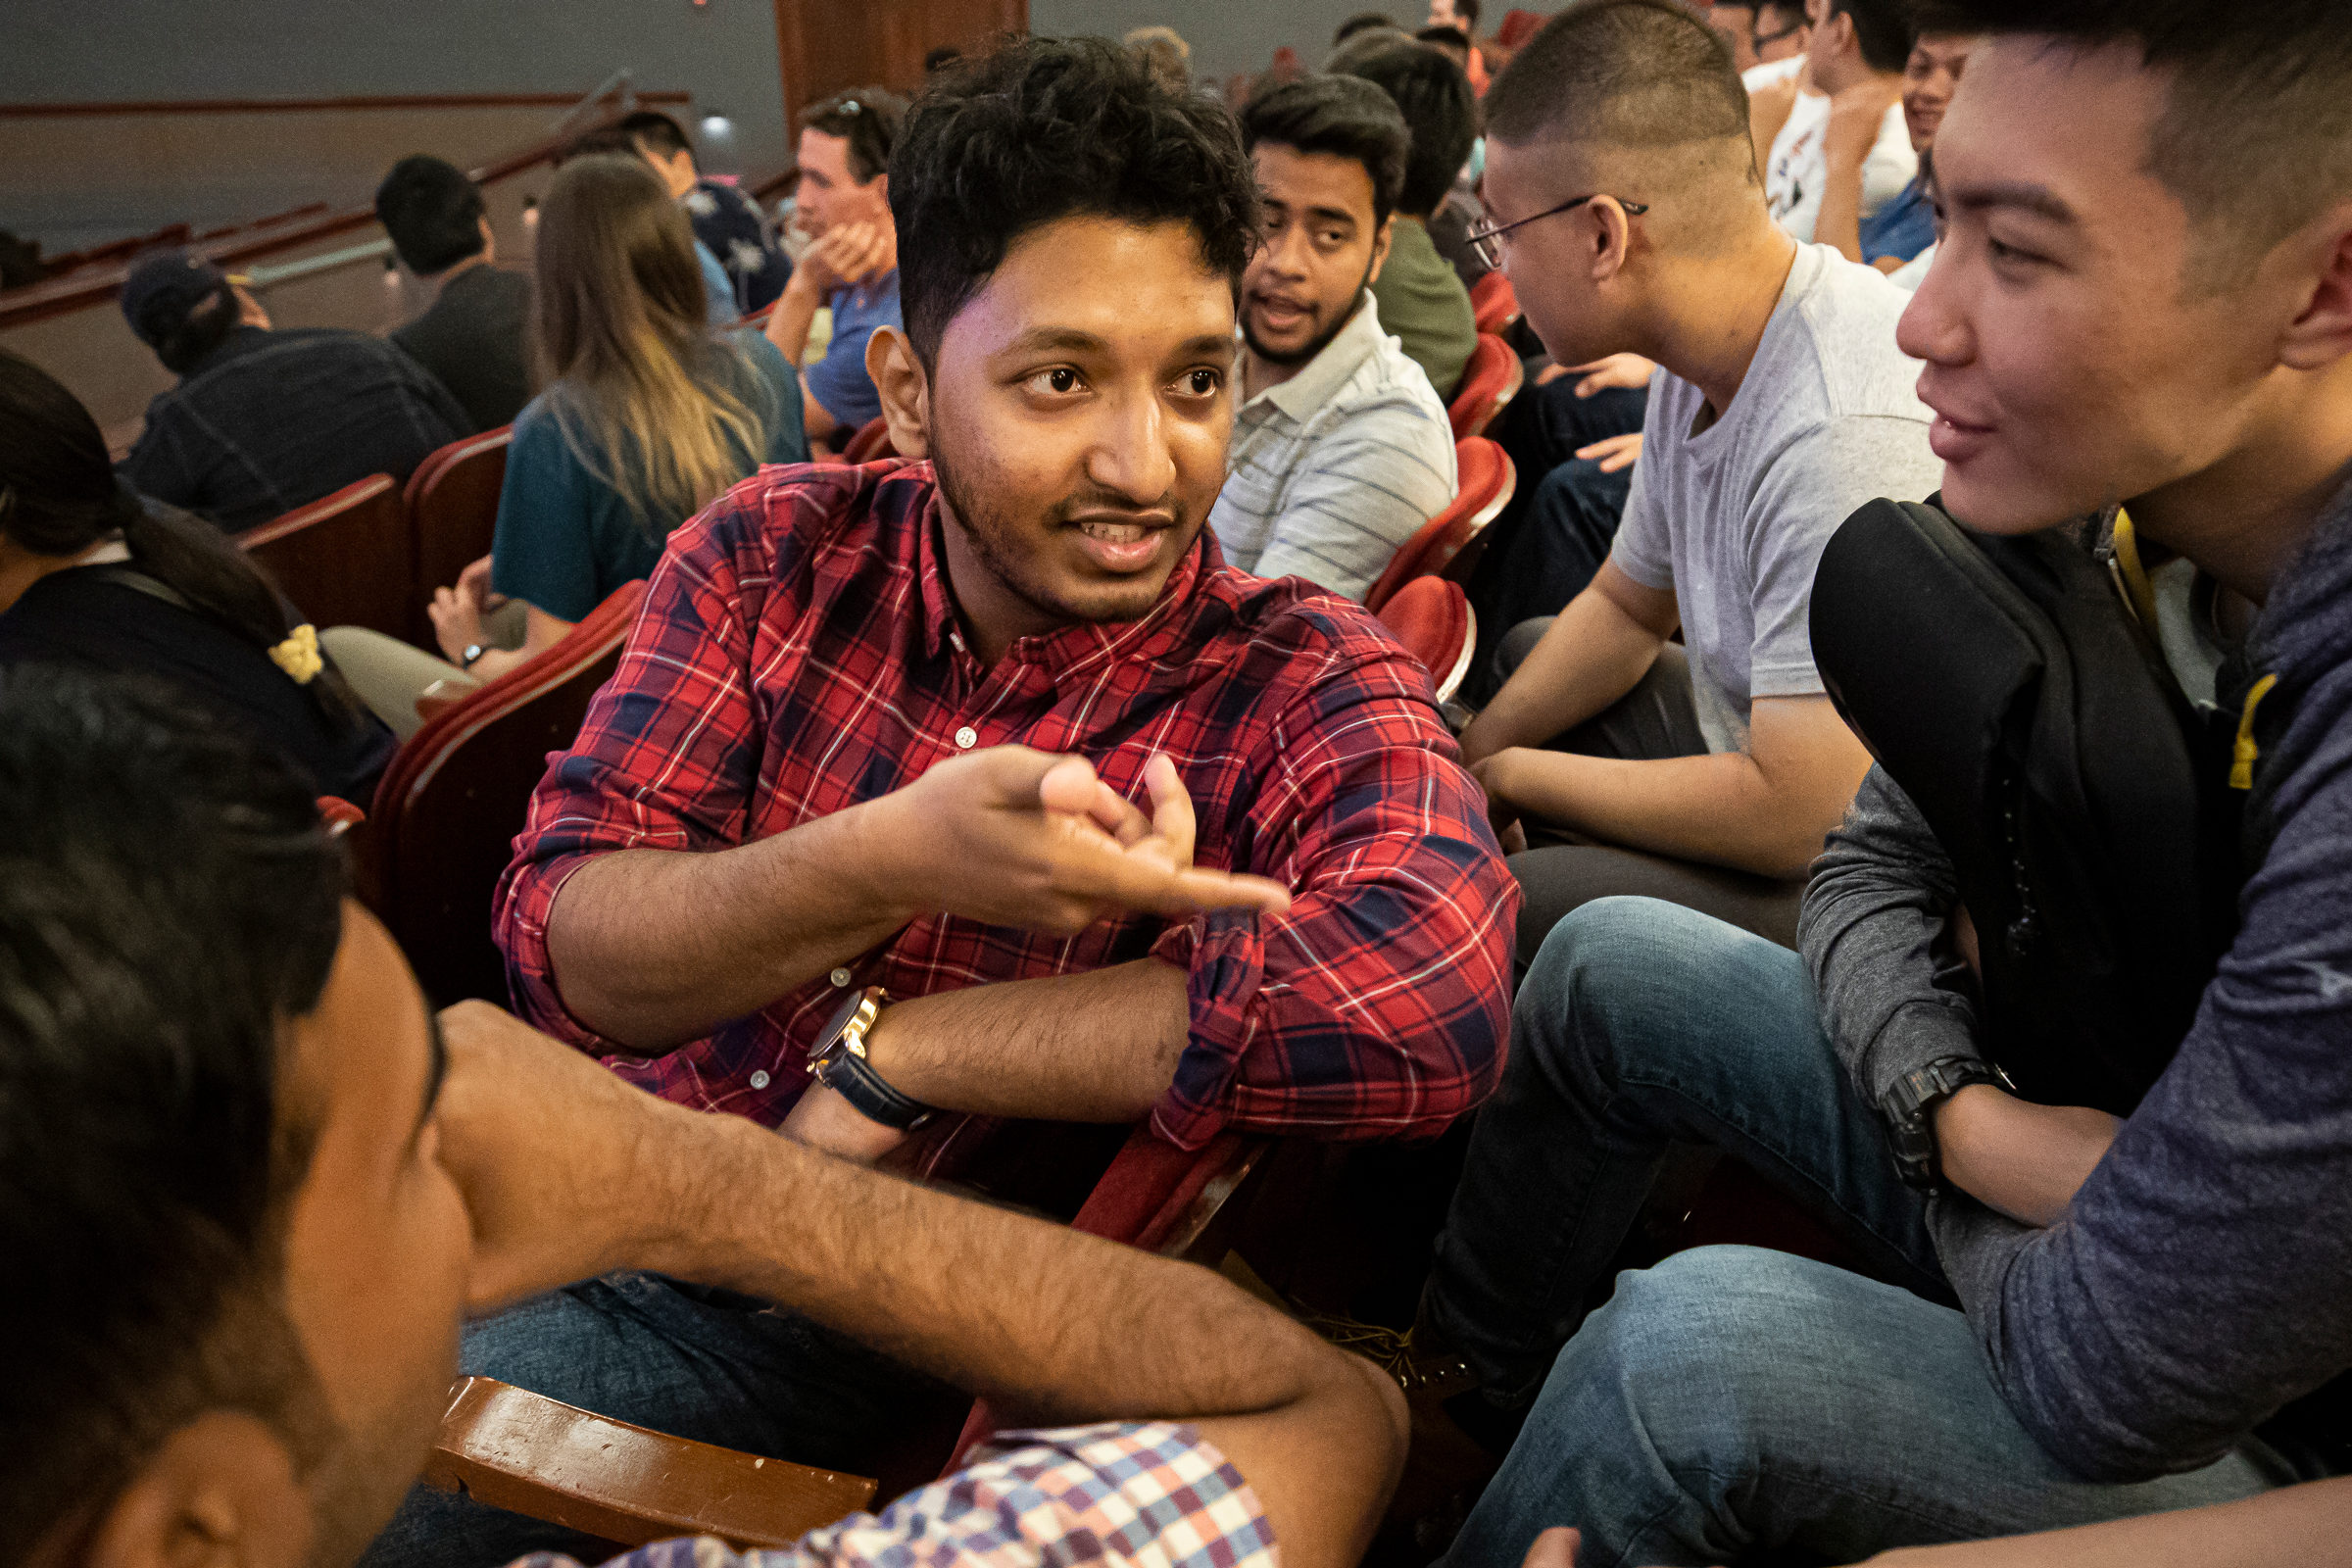 A bystander intervention workshop at the Michigan Engineering Graduate Student Orientation in August 29. Change it UP! Bystander intervention teaches similar practices. Photo: Joseph Xu/Michigan Engineering